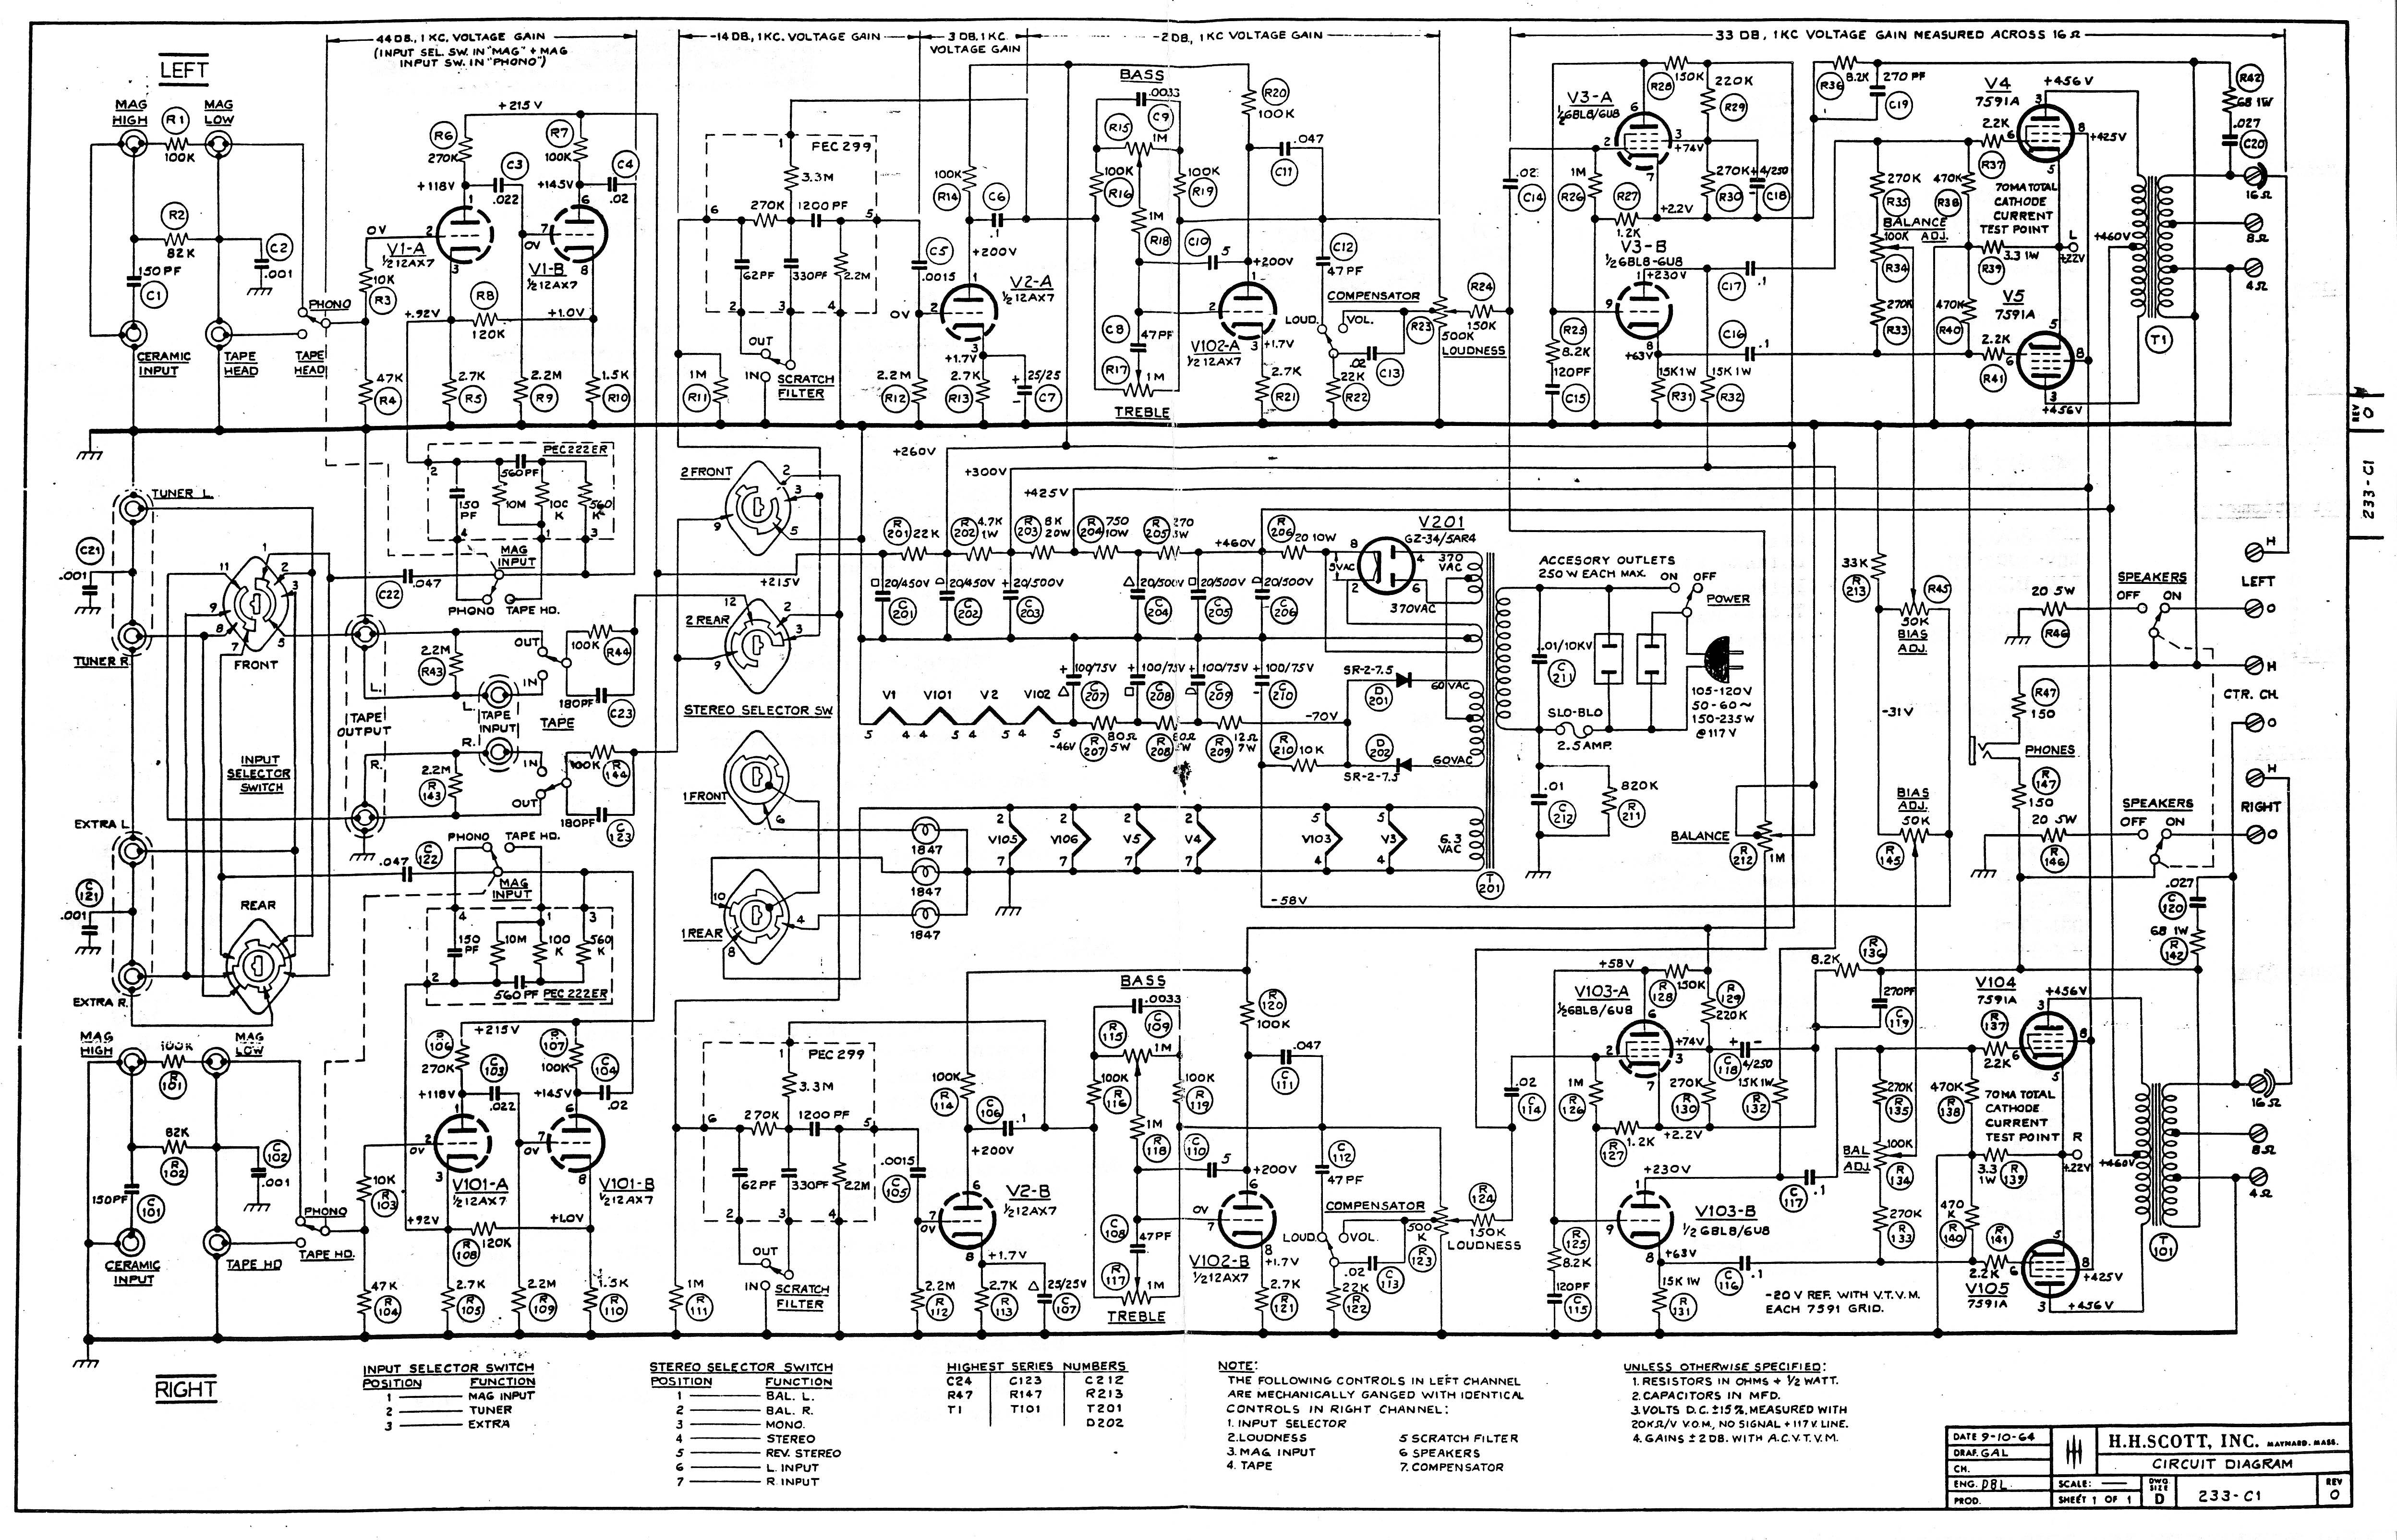 ferrari wiring diagrams with Scott Tv Wiring Diagrams on Dirt Bike Ignition Wiring Diagrams likewise Tortoise Wiring Diagram For Controls moreover Schematic Subway Map moreover 1985 Ferrari 328 Wiring Diagrams likewise T76751.